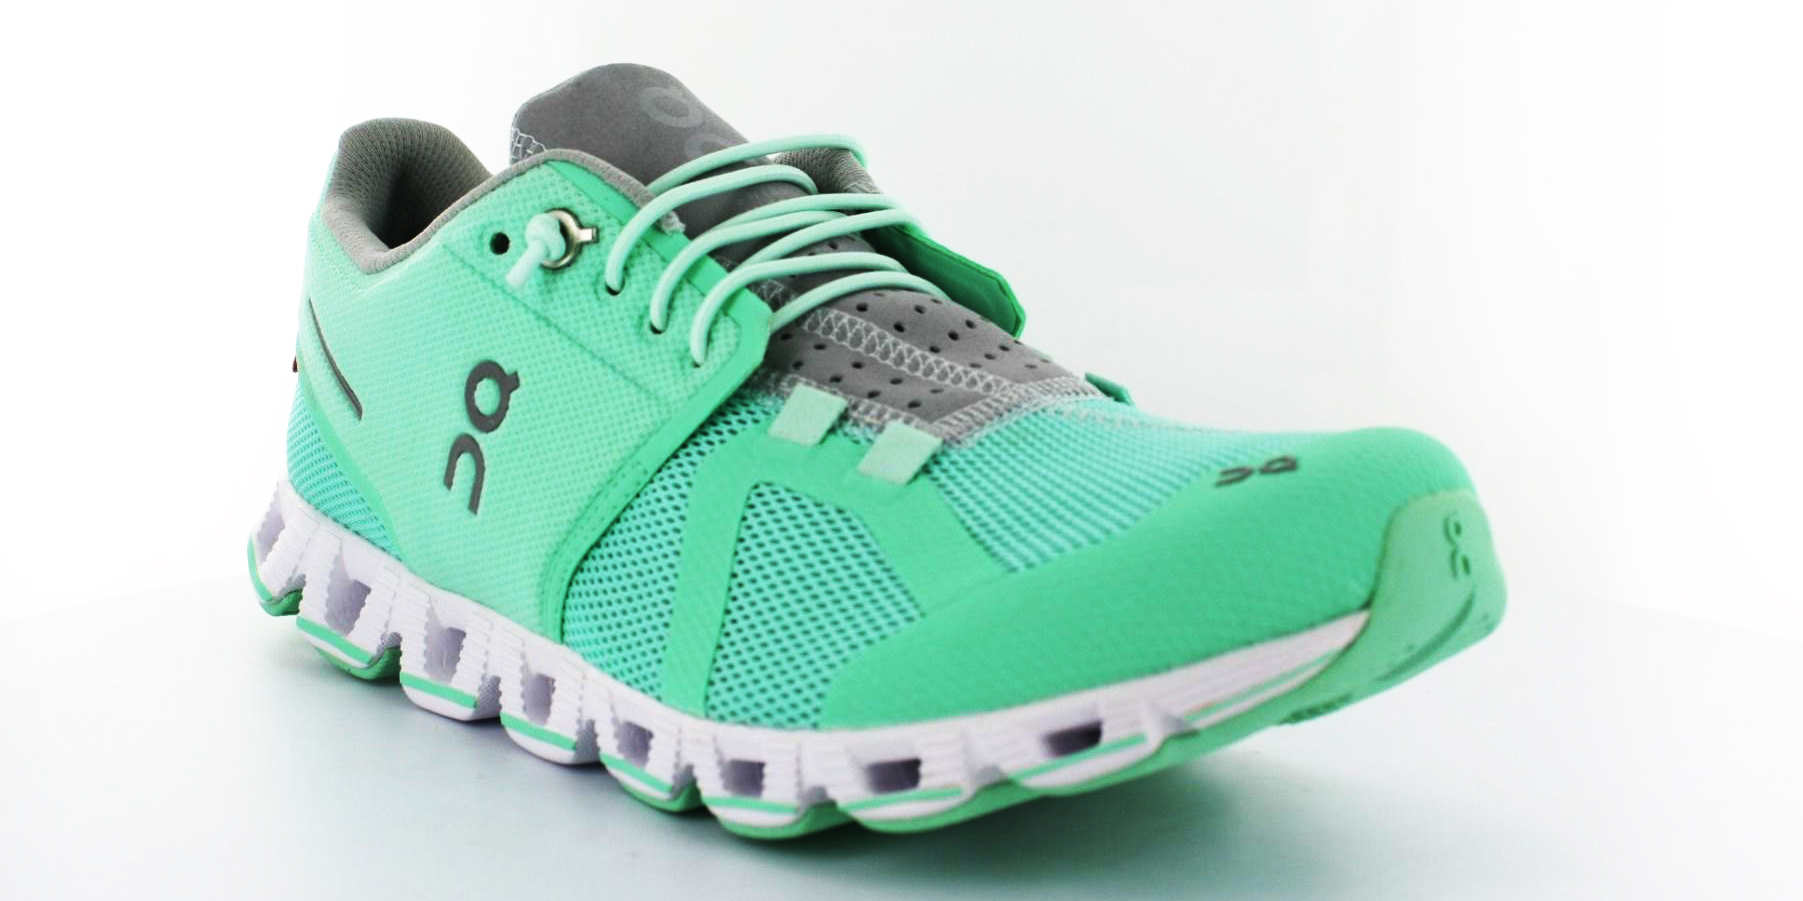 on running shoes review